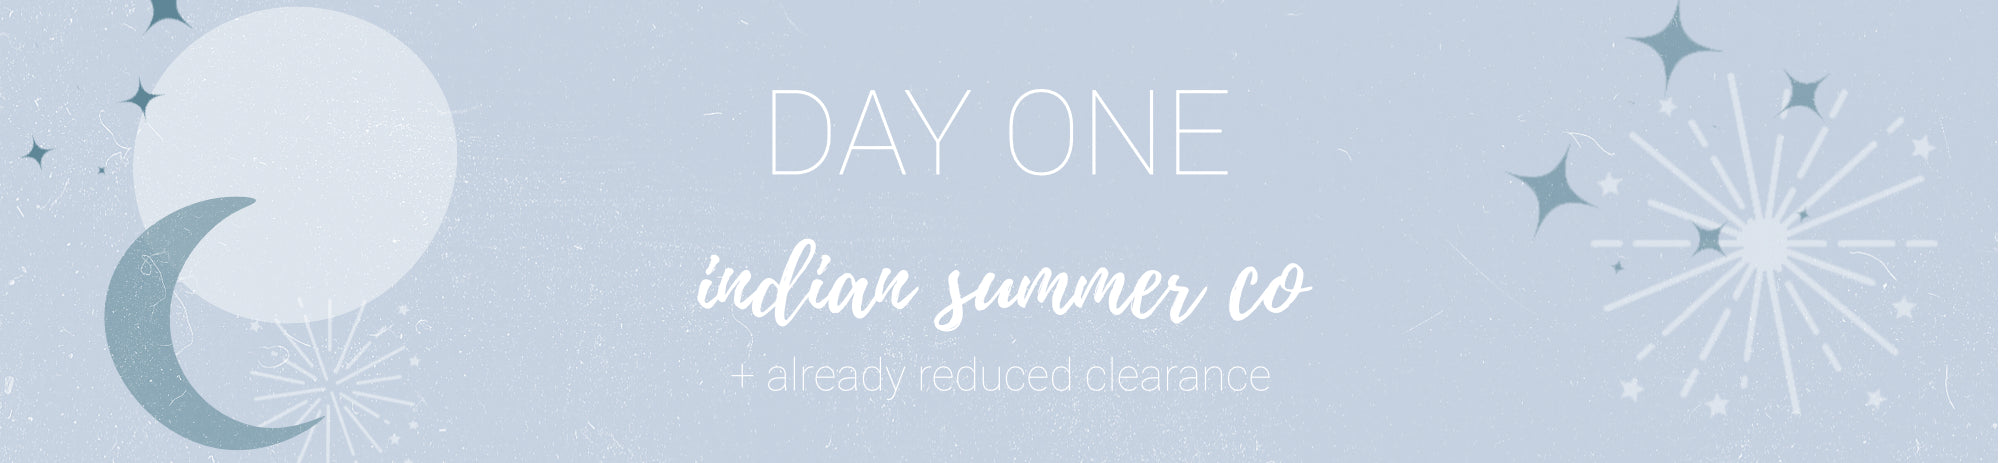 20% off Indian Summer Co + already reduced clearance Use Code: CHEER1